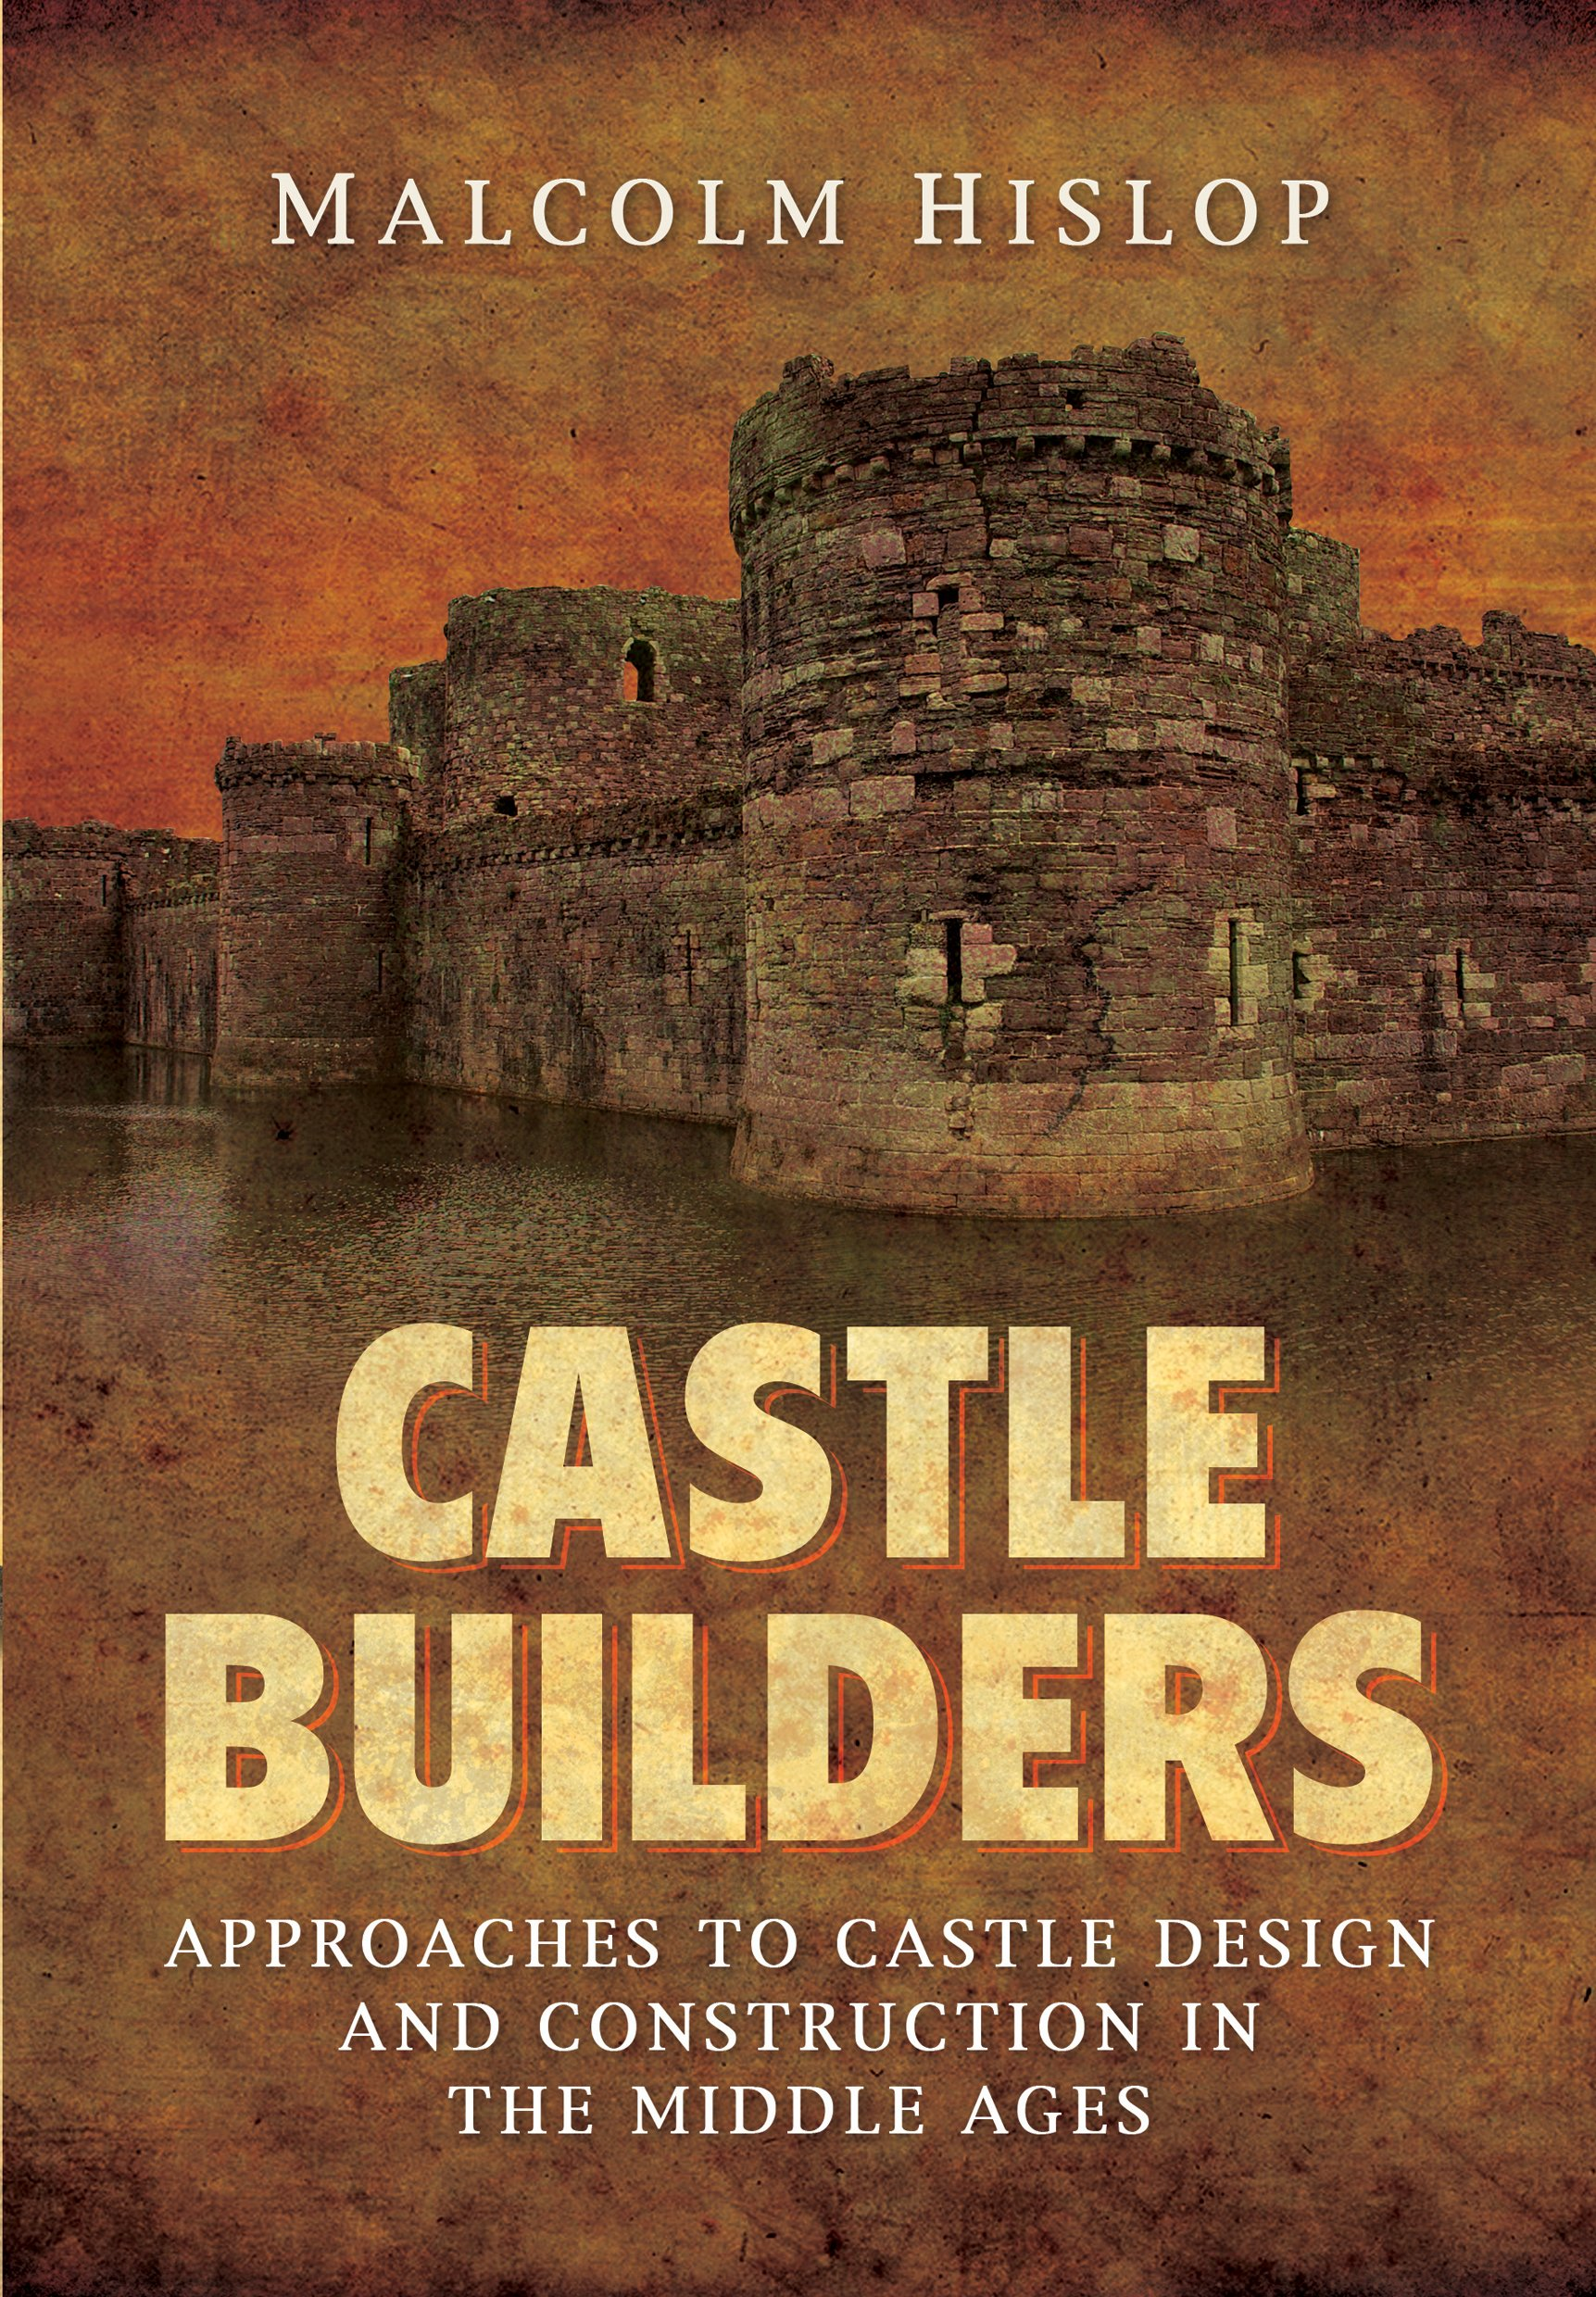 castle builders approaches to castle design and construction in the middle ages malcolm james baillie hislop 9781781593356 amazoncom books